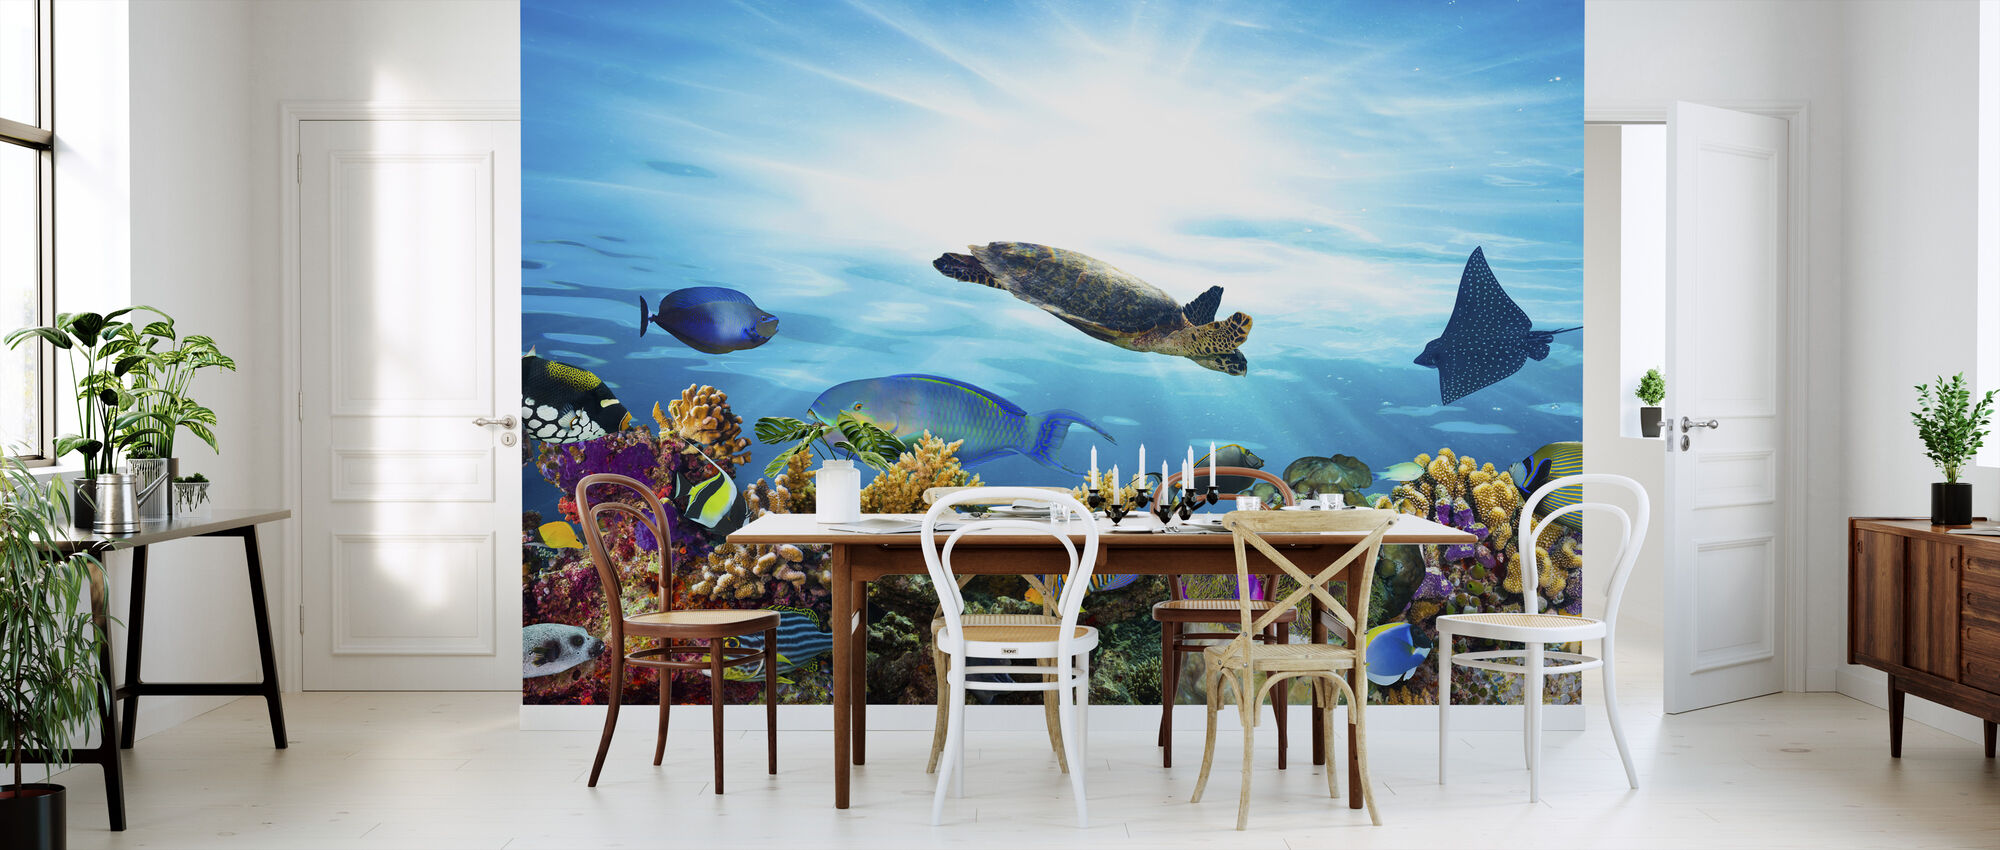 coral reef panorama fototapete nach ma photowall. Black Bedroom Furniture Sets. Home Design Ideas